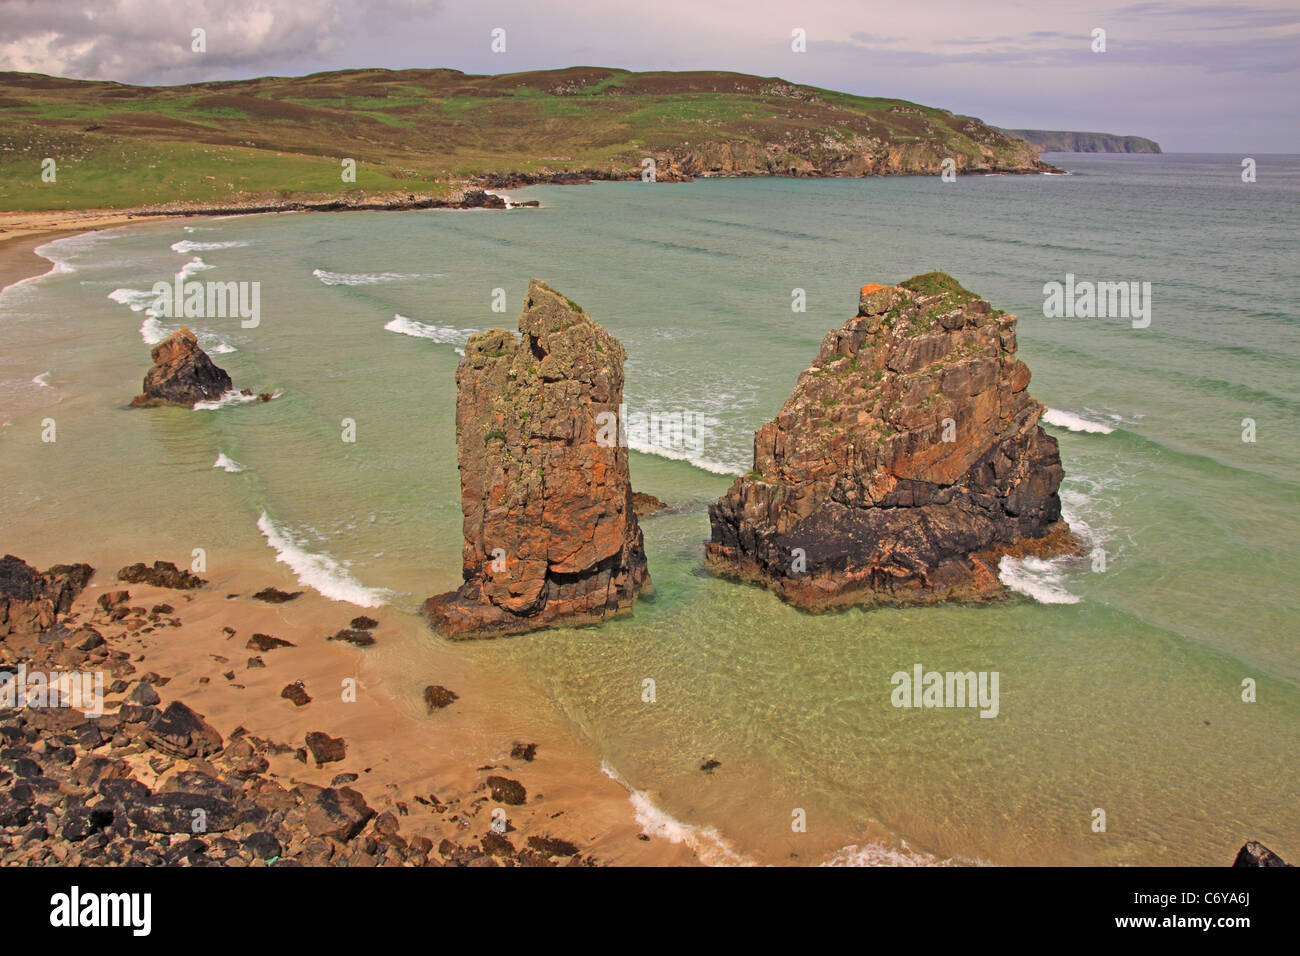 UK Scotland Outer Hebrides Isle of Lewis Tolsa Beach and Rock Stacks - Stock Image